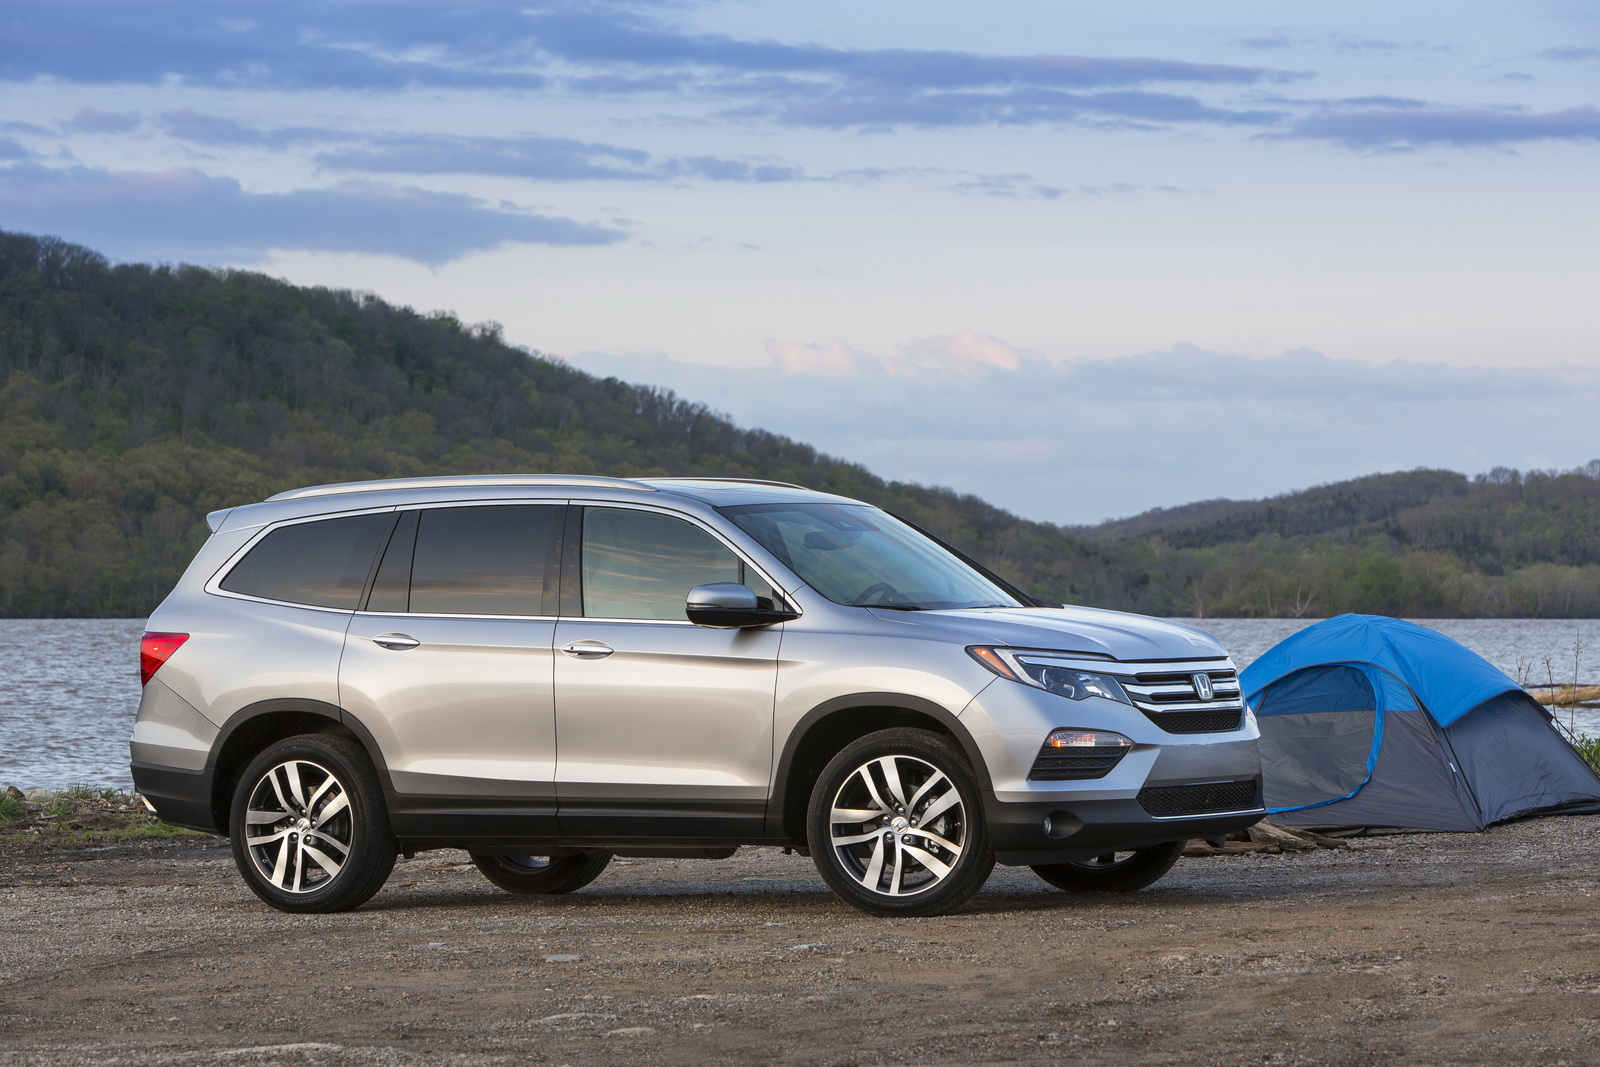 ... 2017 Honda Pilot / Disponible maintenant Avec Apple carplay & Android